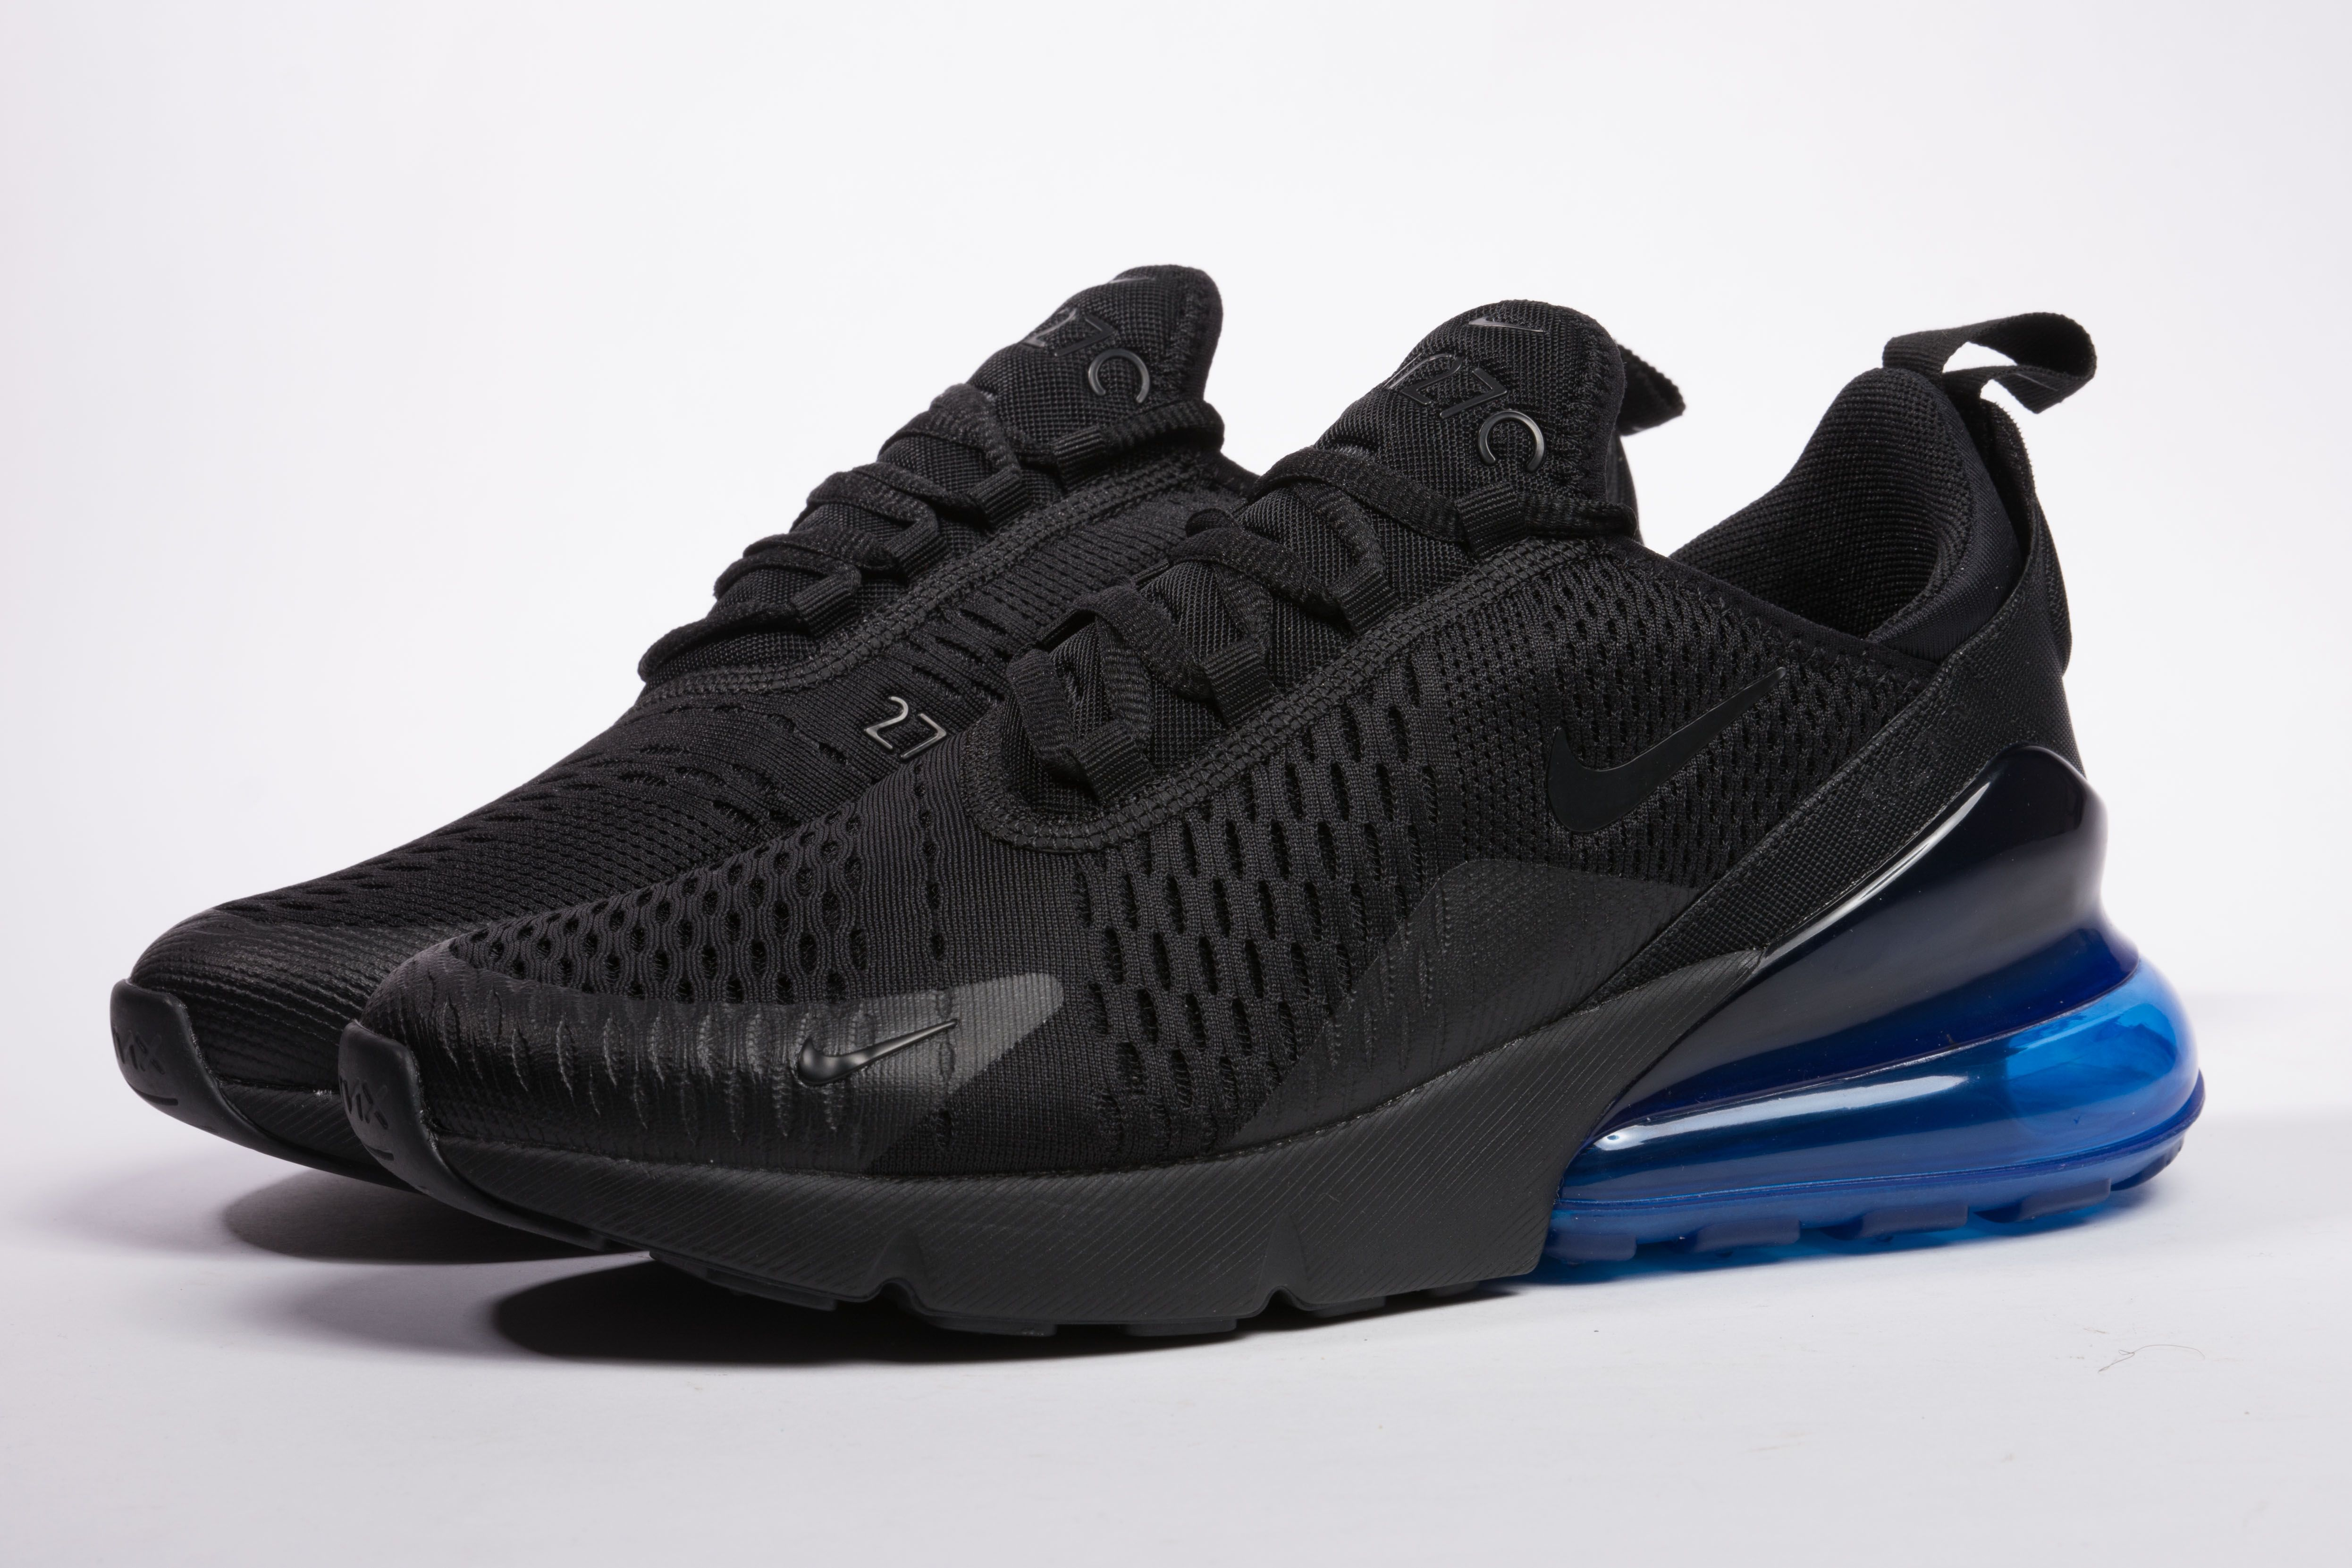 quality design 70498 f8b62 Nike Air Max 270 AH8050-009 Black Blue Sneaker for Sale-14 Matching Black  tonal branding and rubber outsole completes the design.